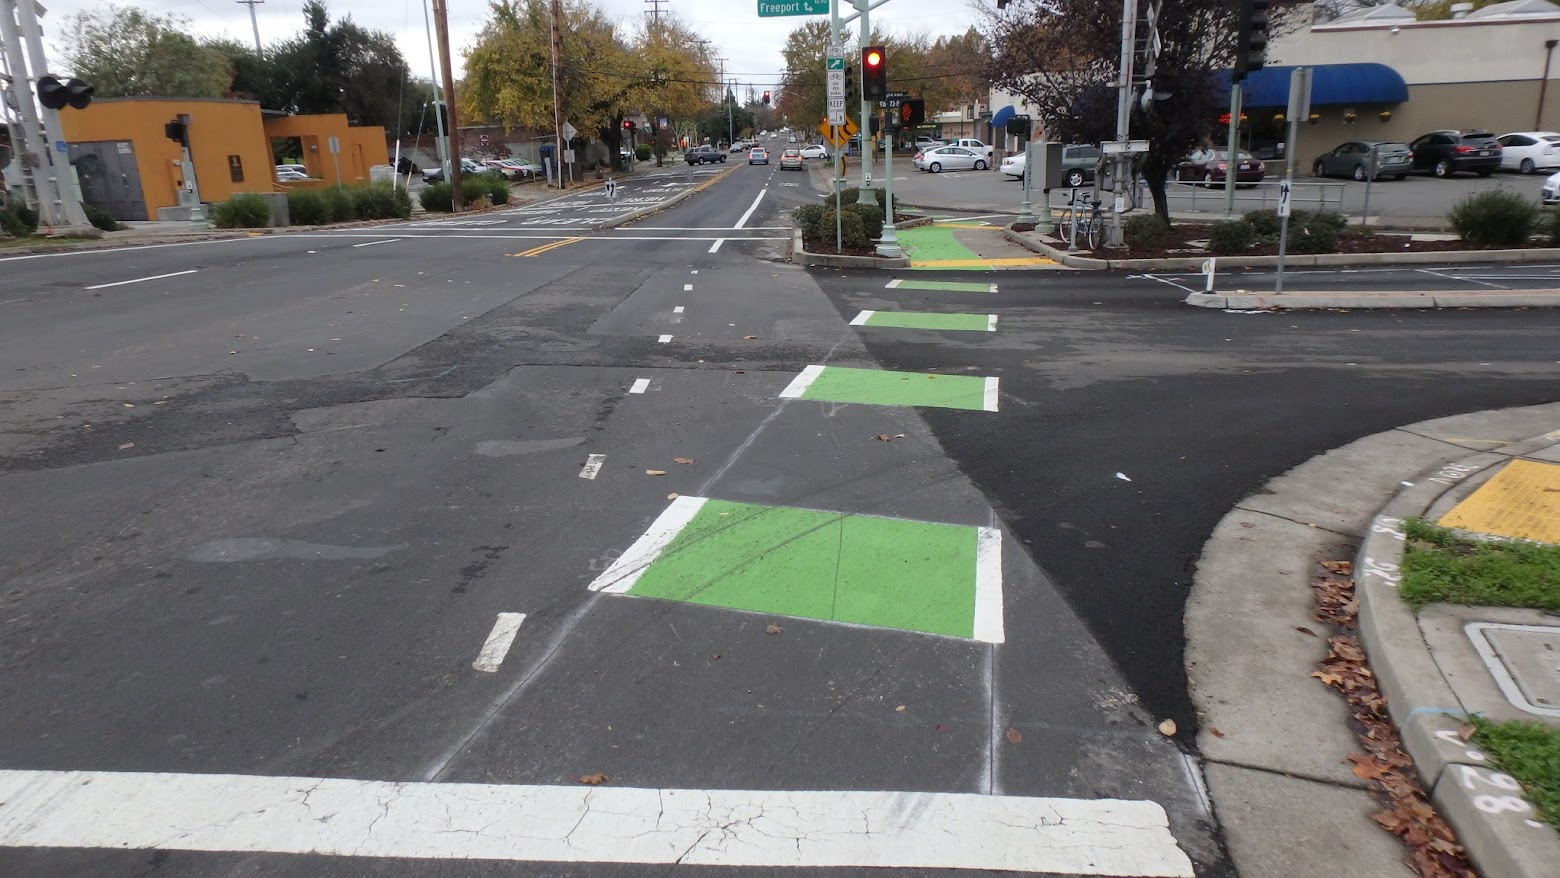 Wasted space for a bicycle lane